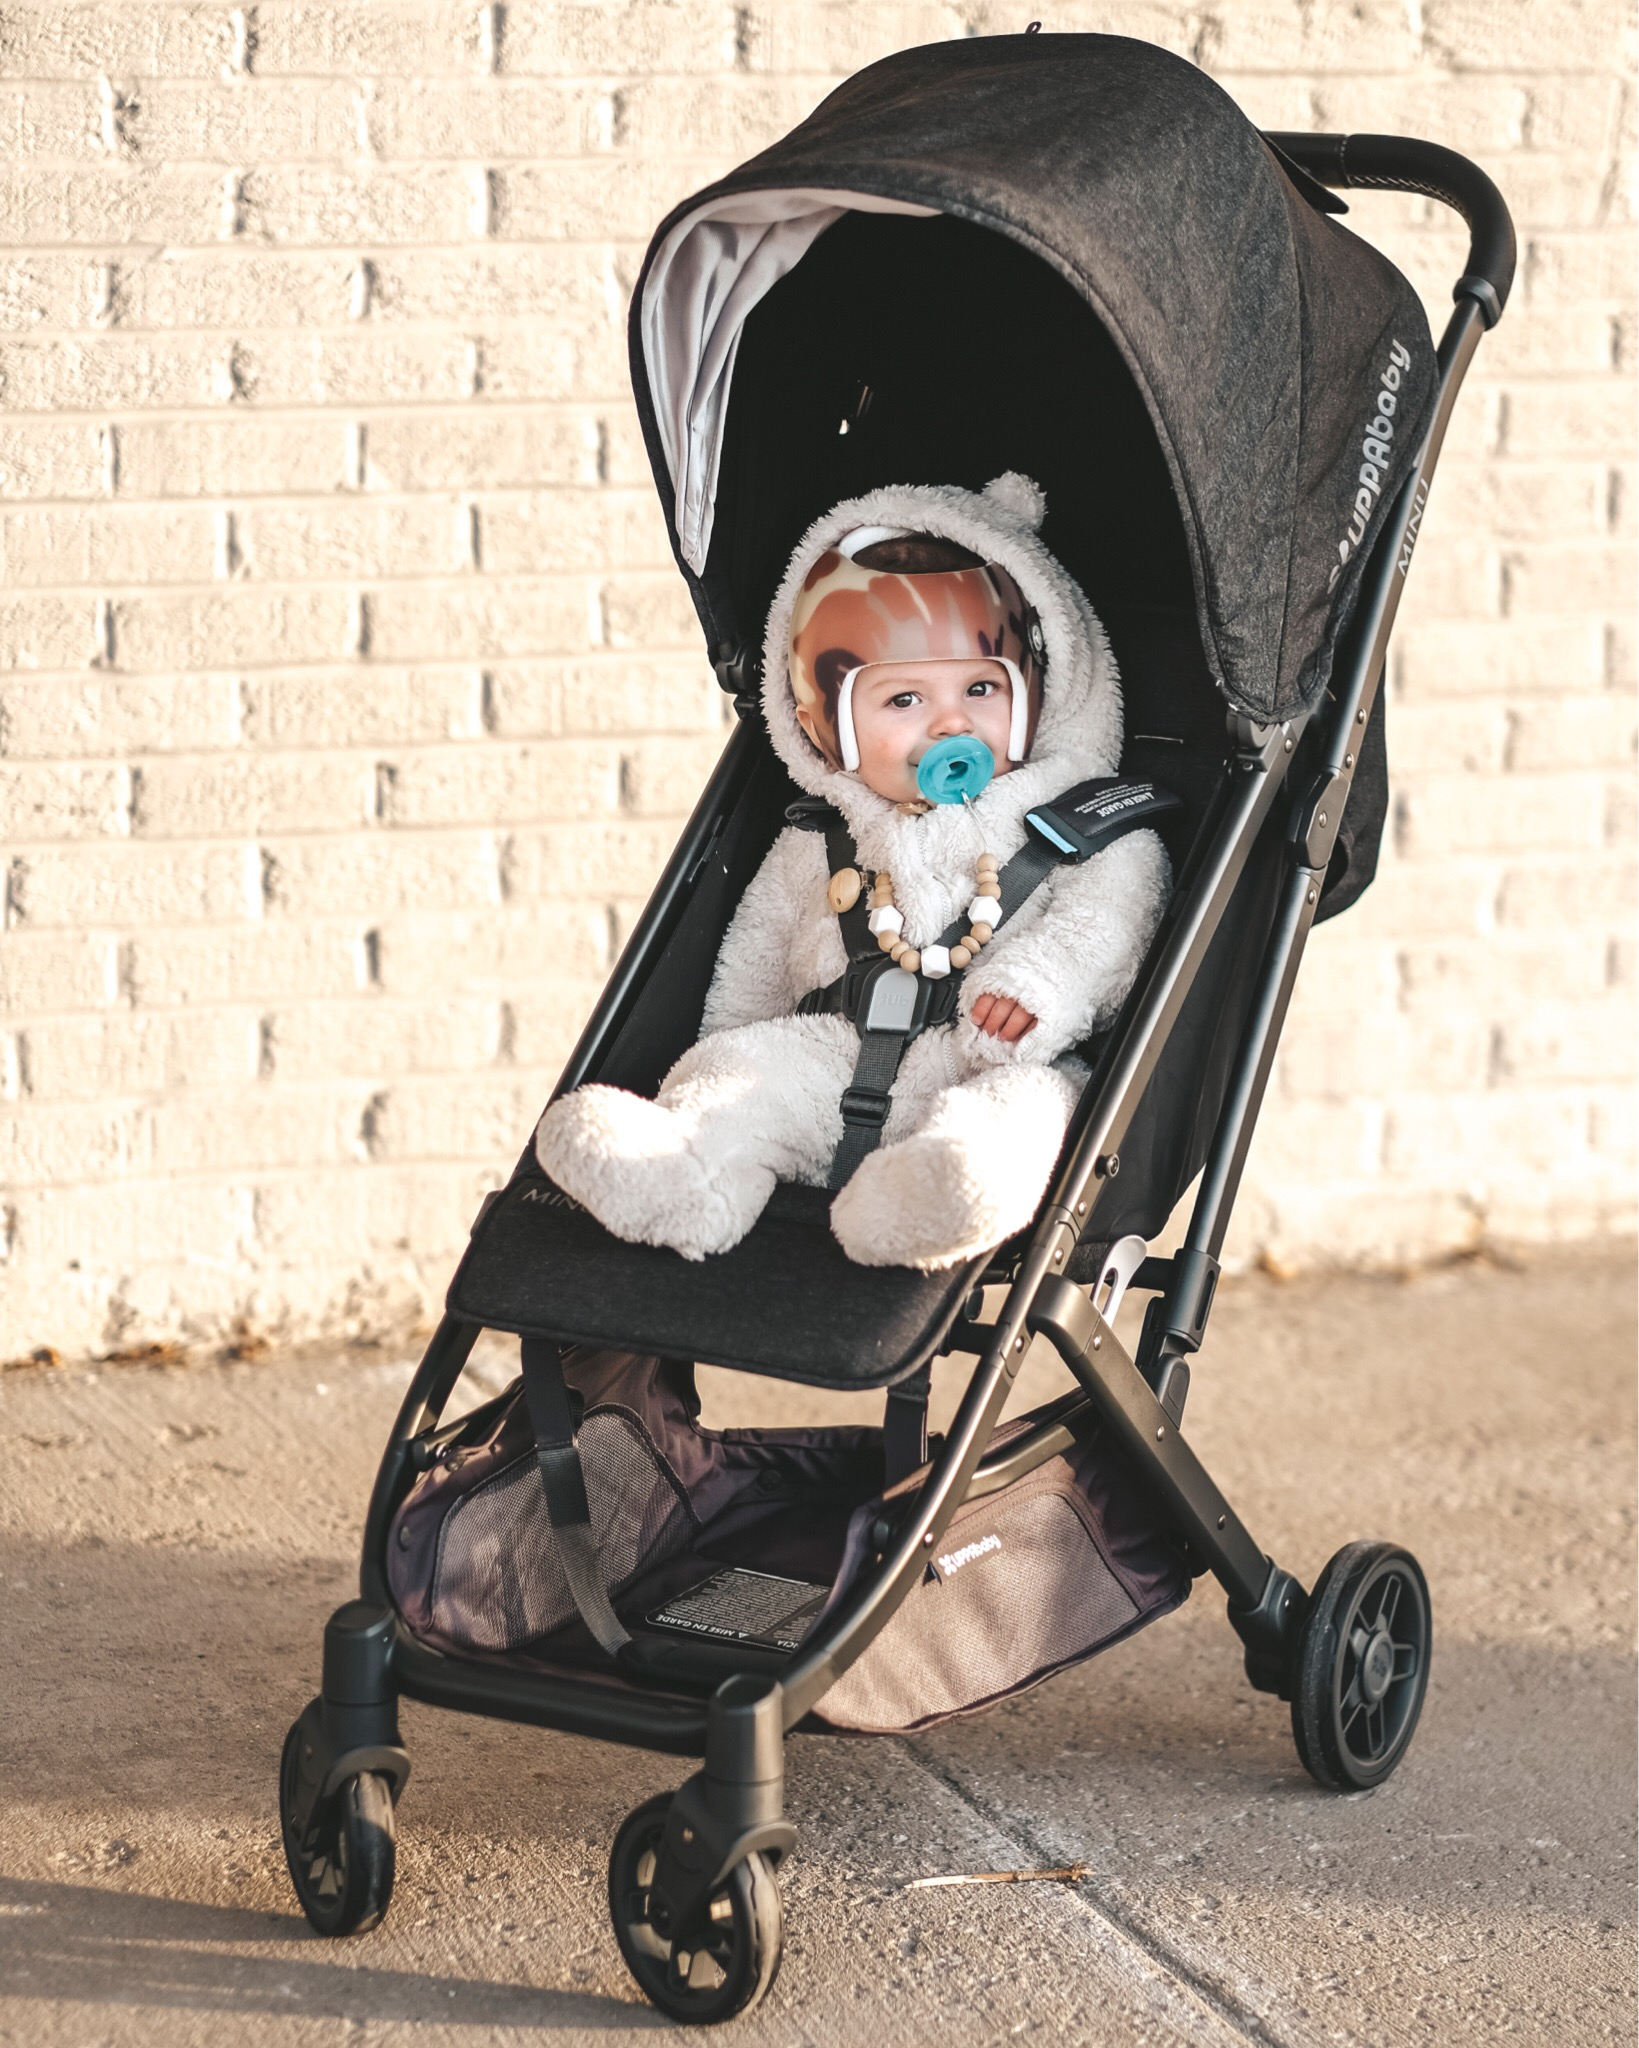 Jett Jones, 8 Months Old.  Uppababy MINU stroller.  Compact stroller review.